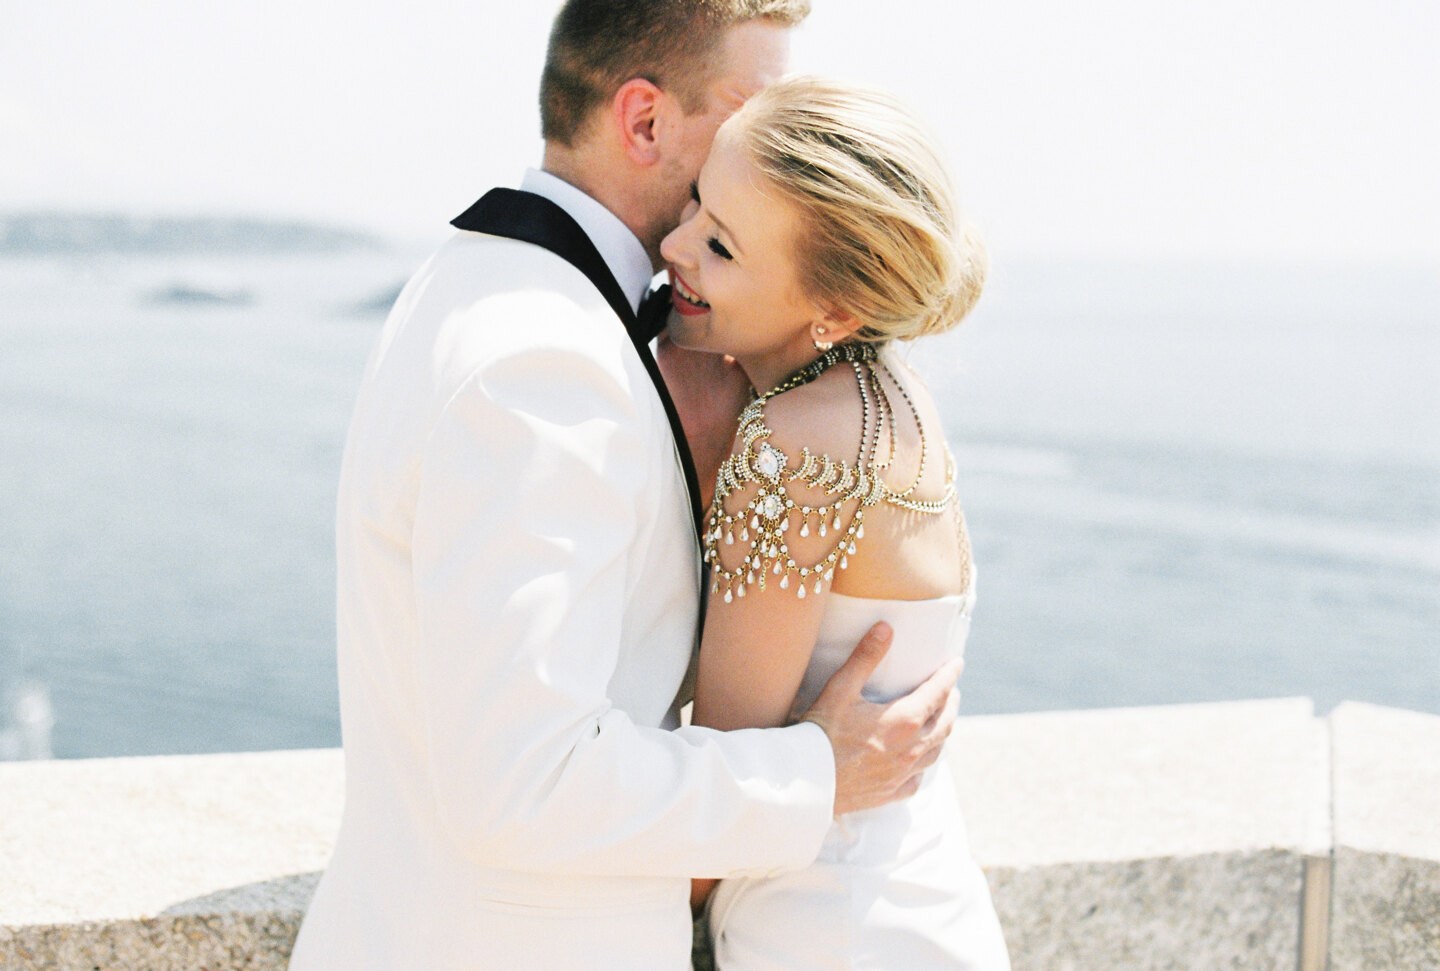 Services of Wedding Photographer in Italy: An exquisite and luxurious couple of newlyweds who are hugging on the background of the coast in Monaco. Groom in a white tuxedo hugs his smiling bride, who is dressed in a designer wedding dress decorated with s